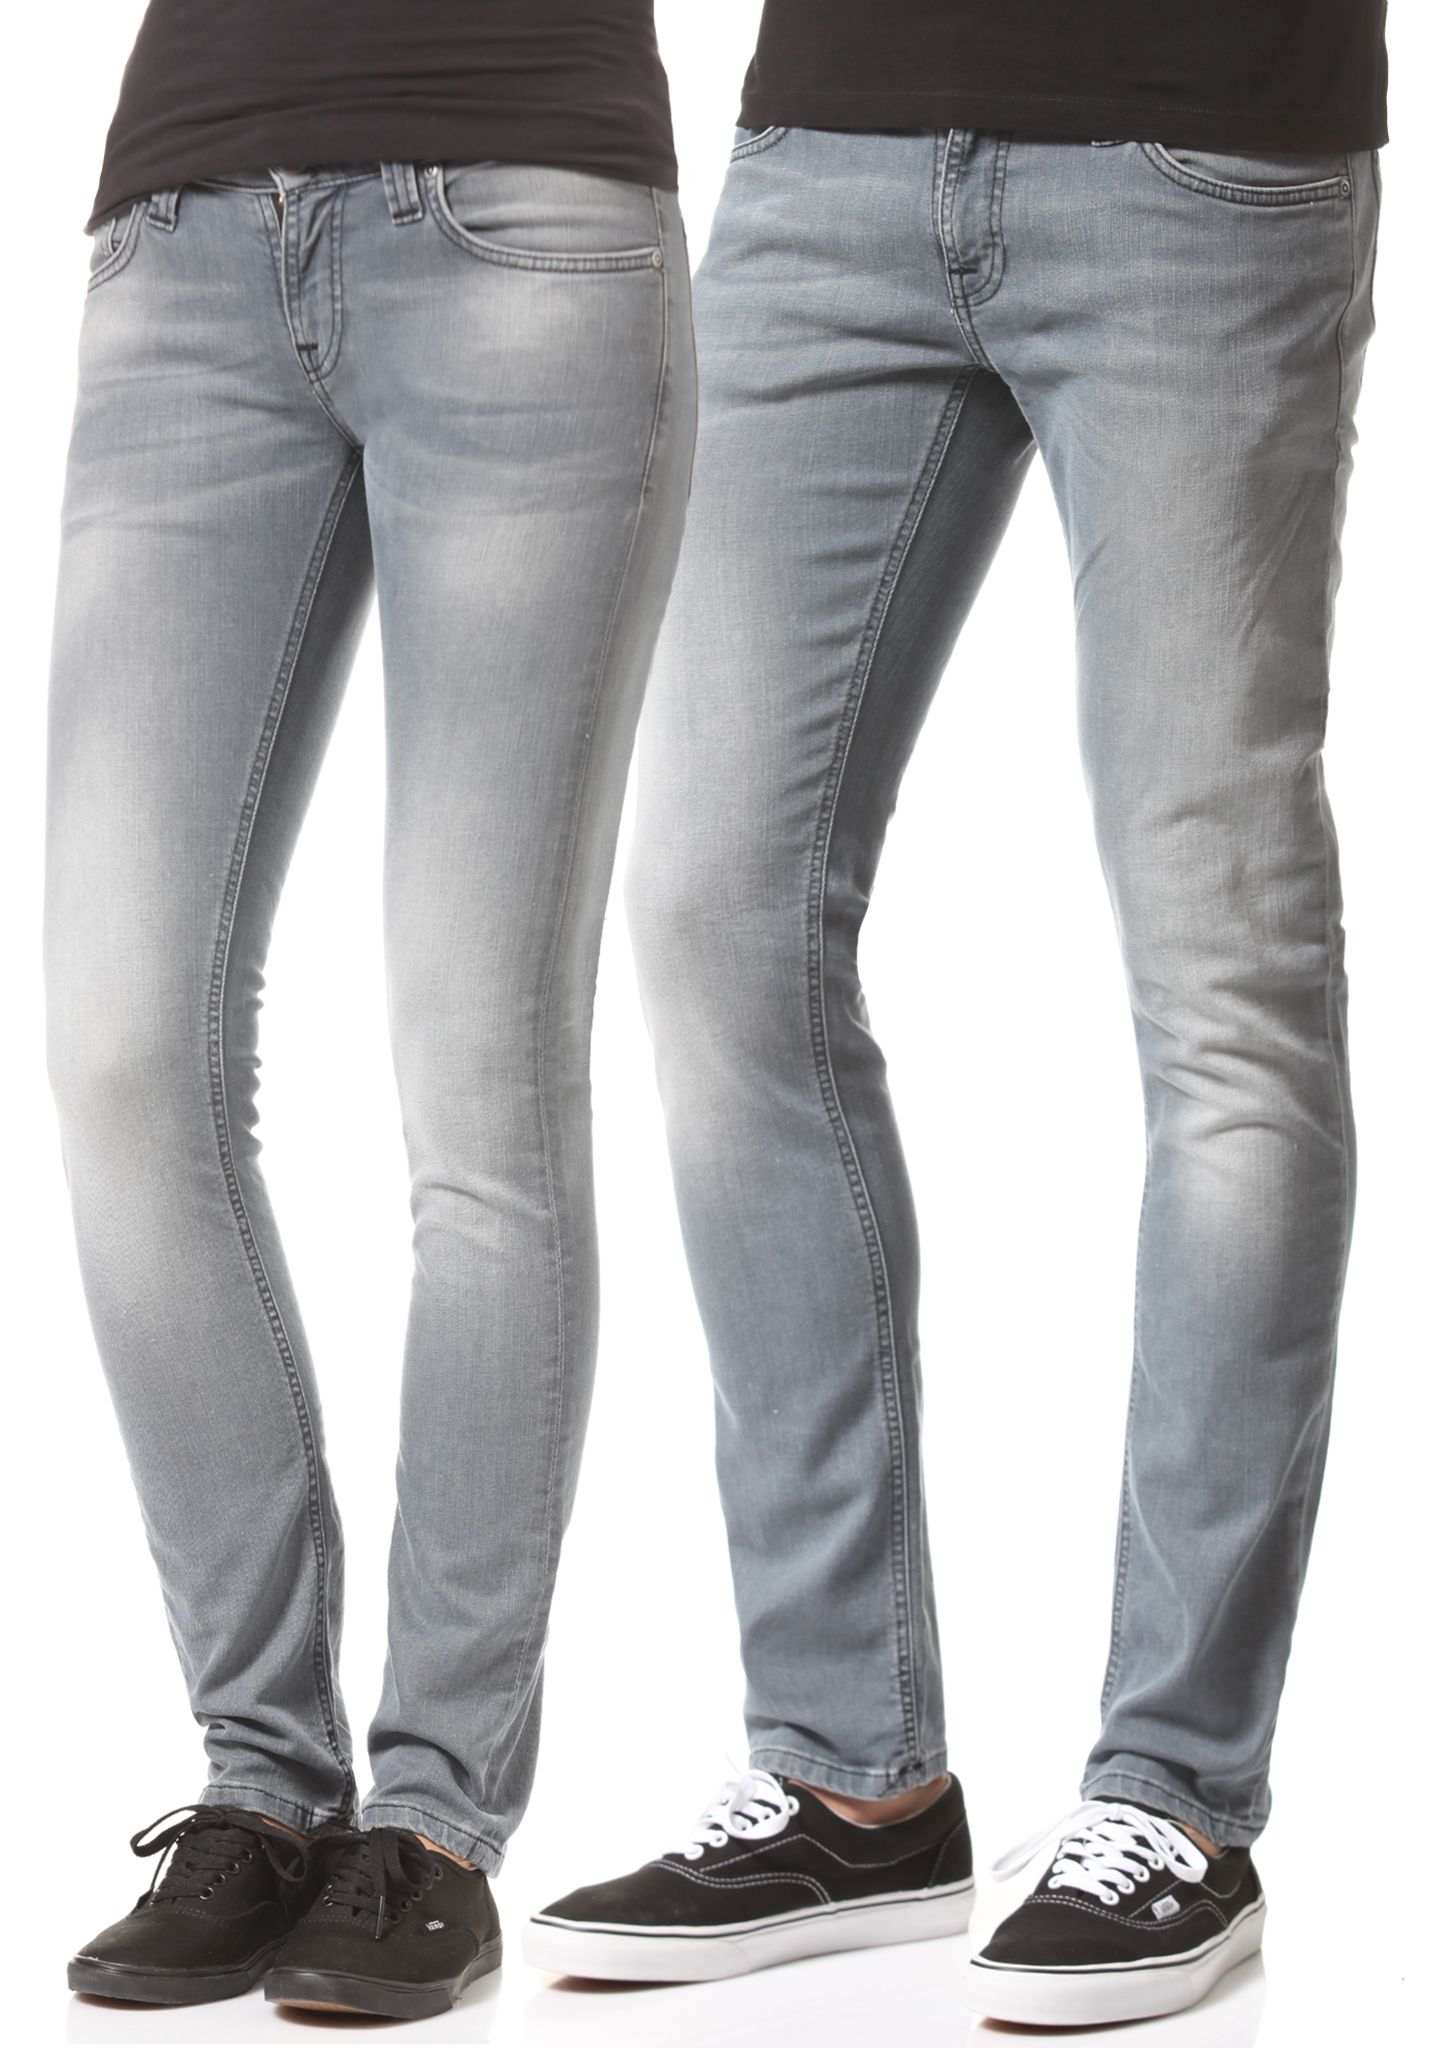 ... preview of 01c73 82374 NUDIE JEANS Tight Long John - Denim Jeans - Blue  - Planet ... 58fa28302aa6